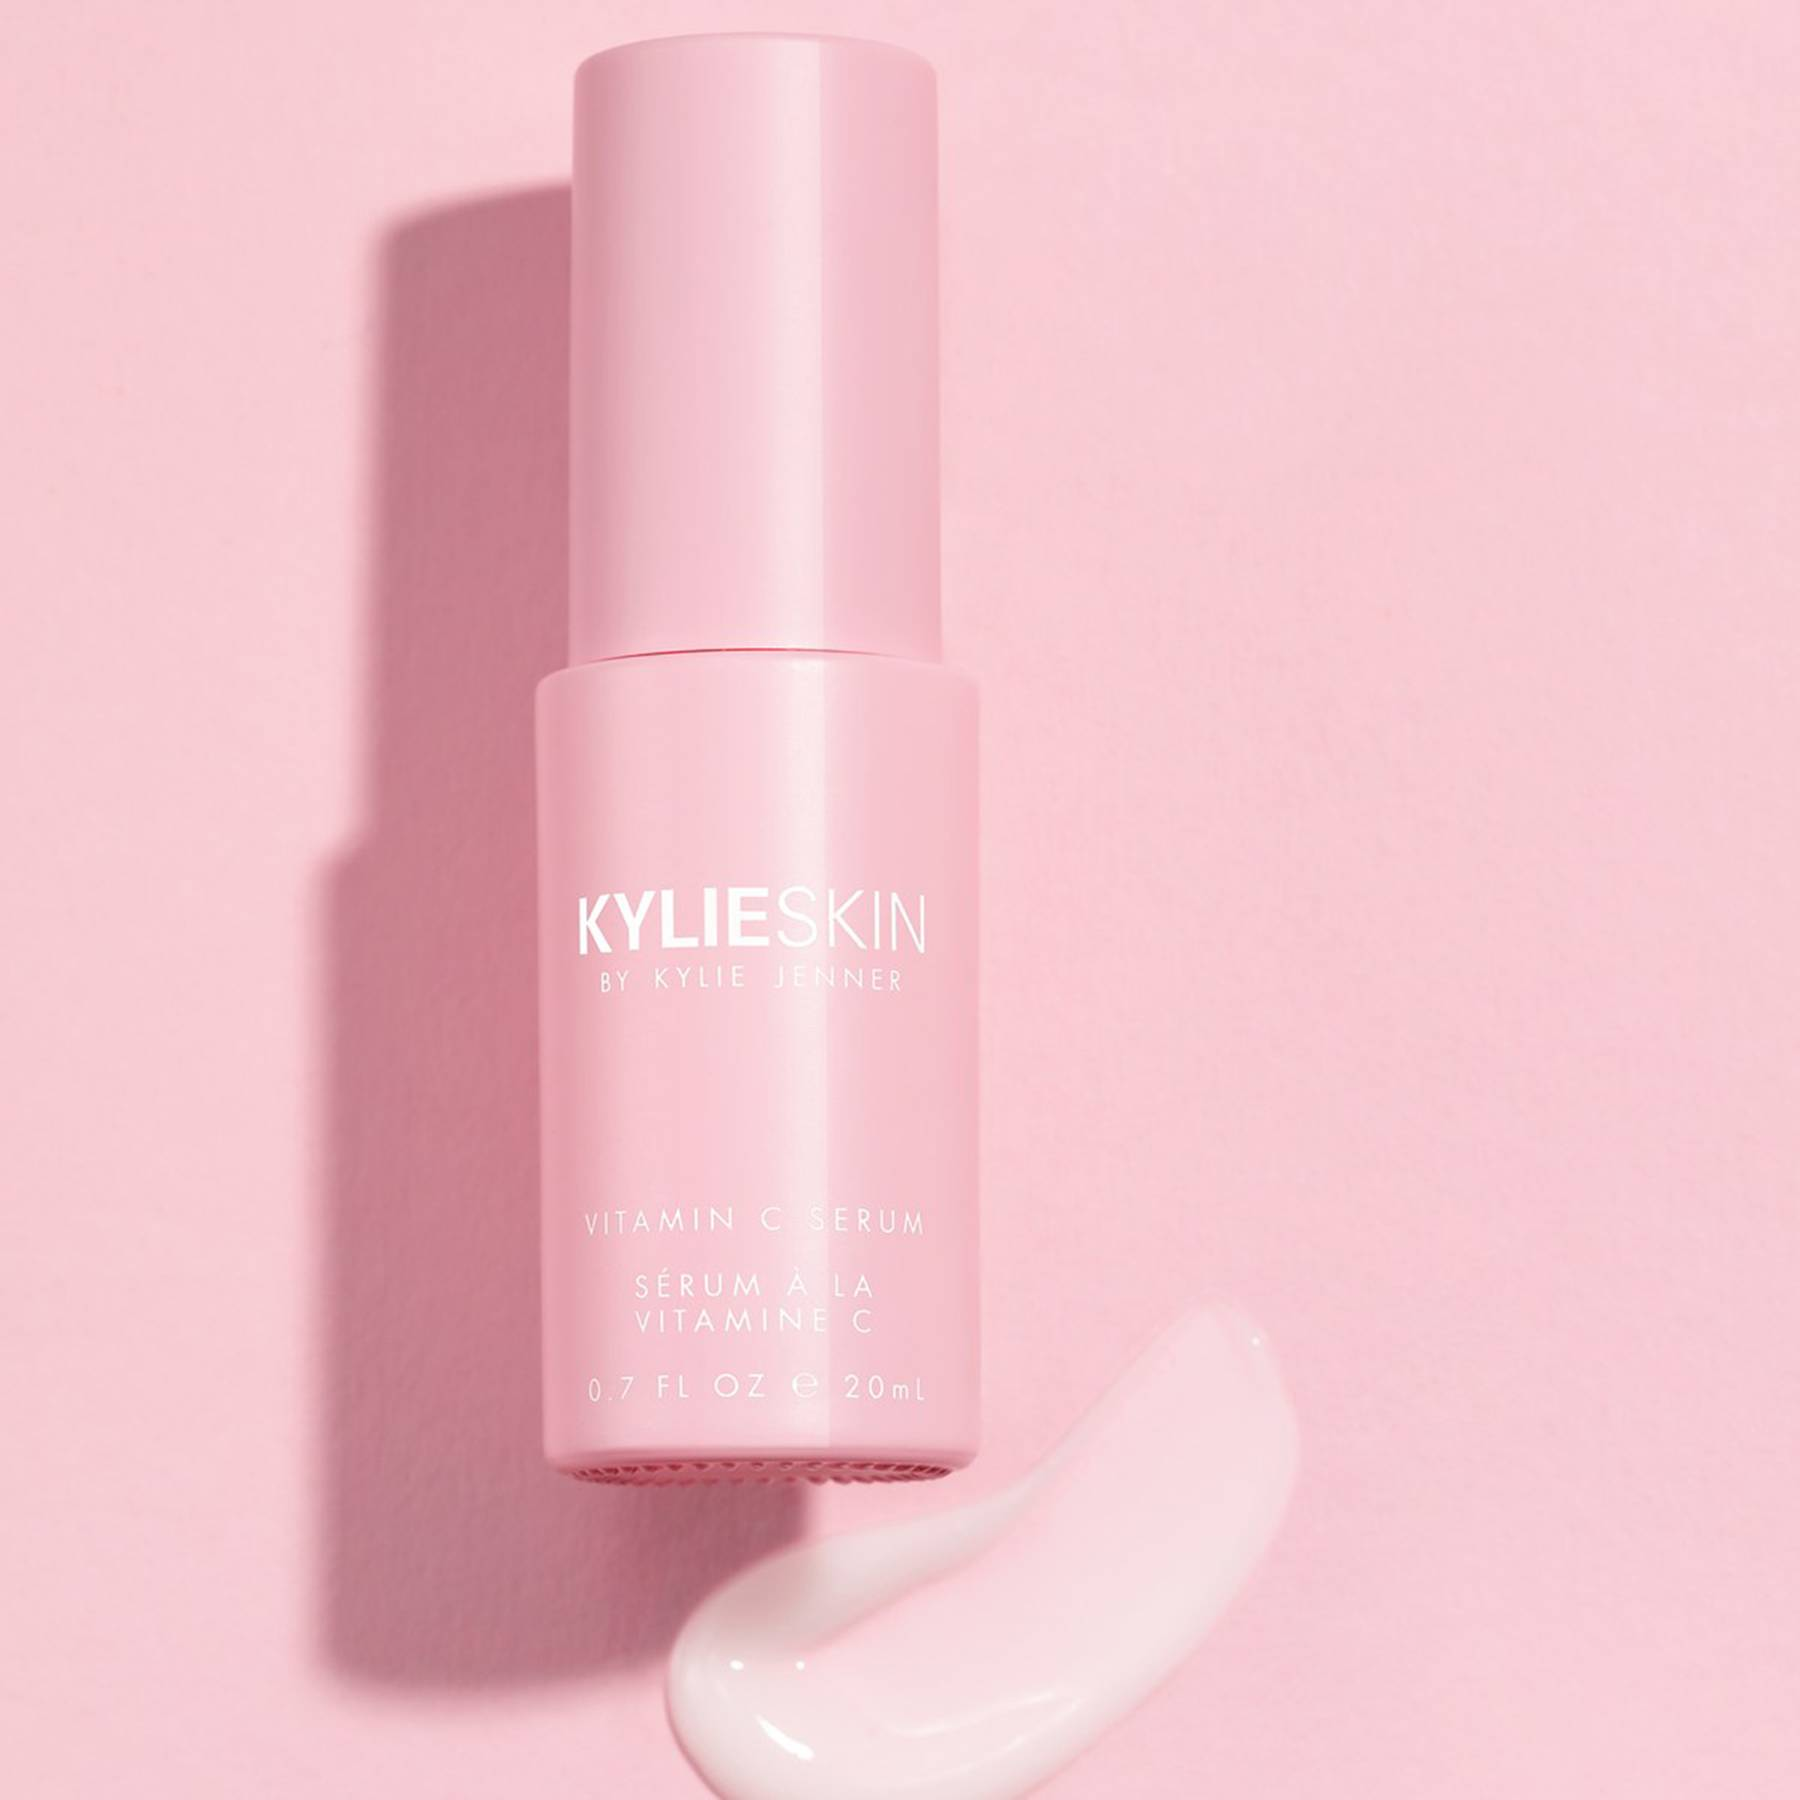 Kylie Skin Review: Everything Worth It In Kylie's New